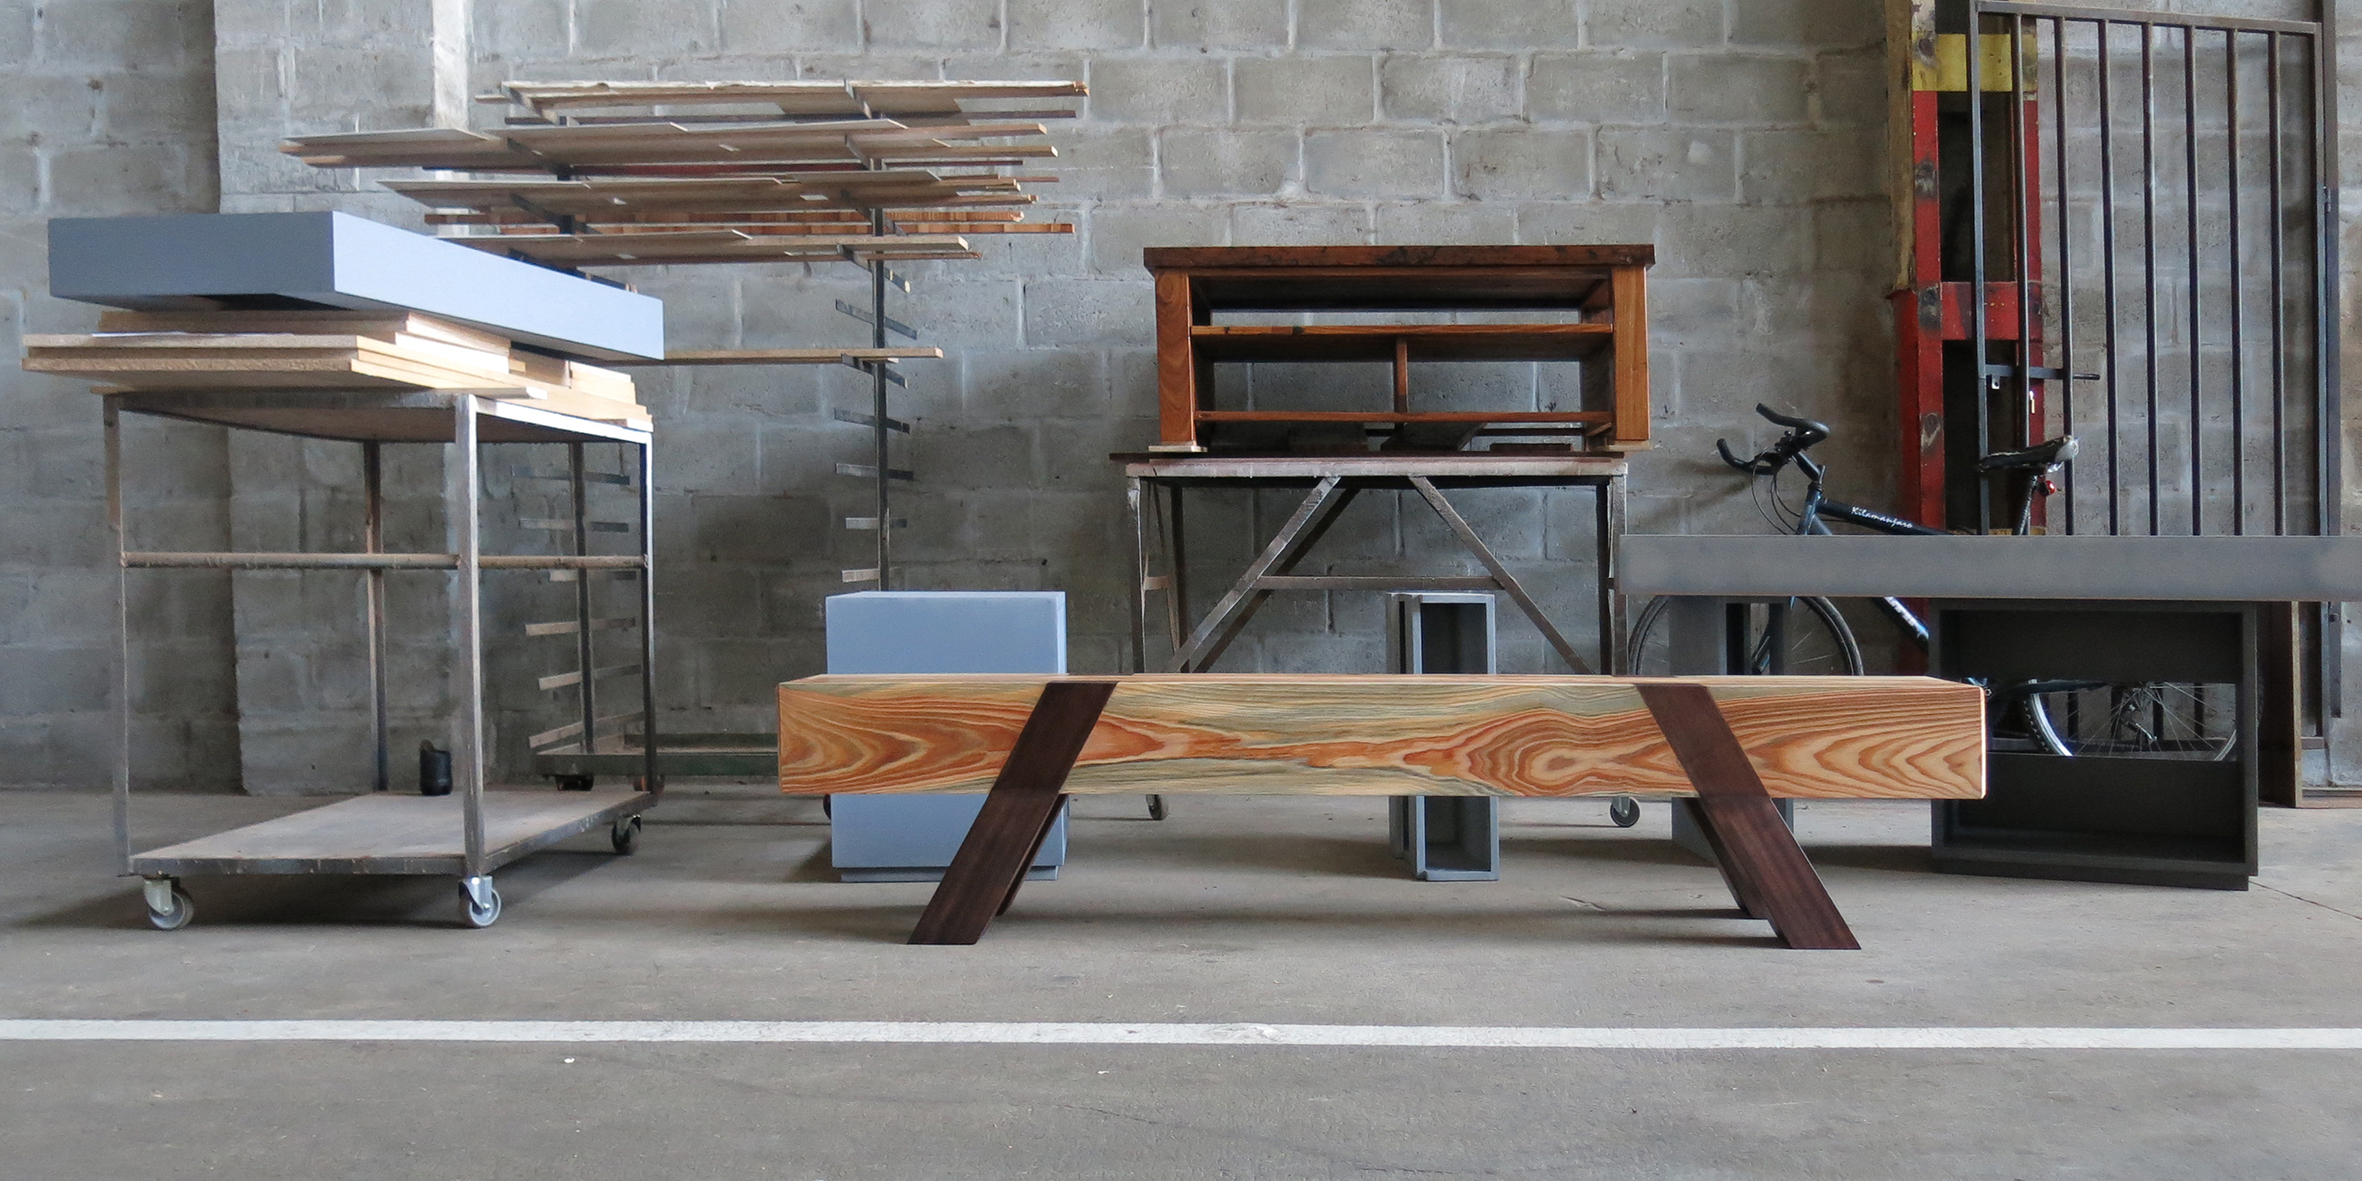 vaulting bench, 3000 l x 320 w x 420 h, stone pine with jarrah legs